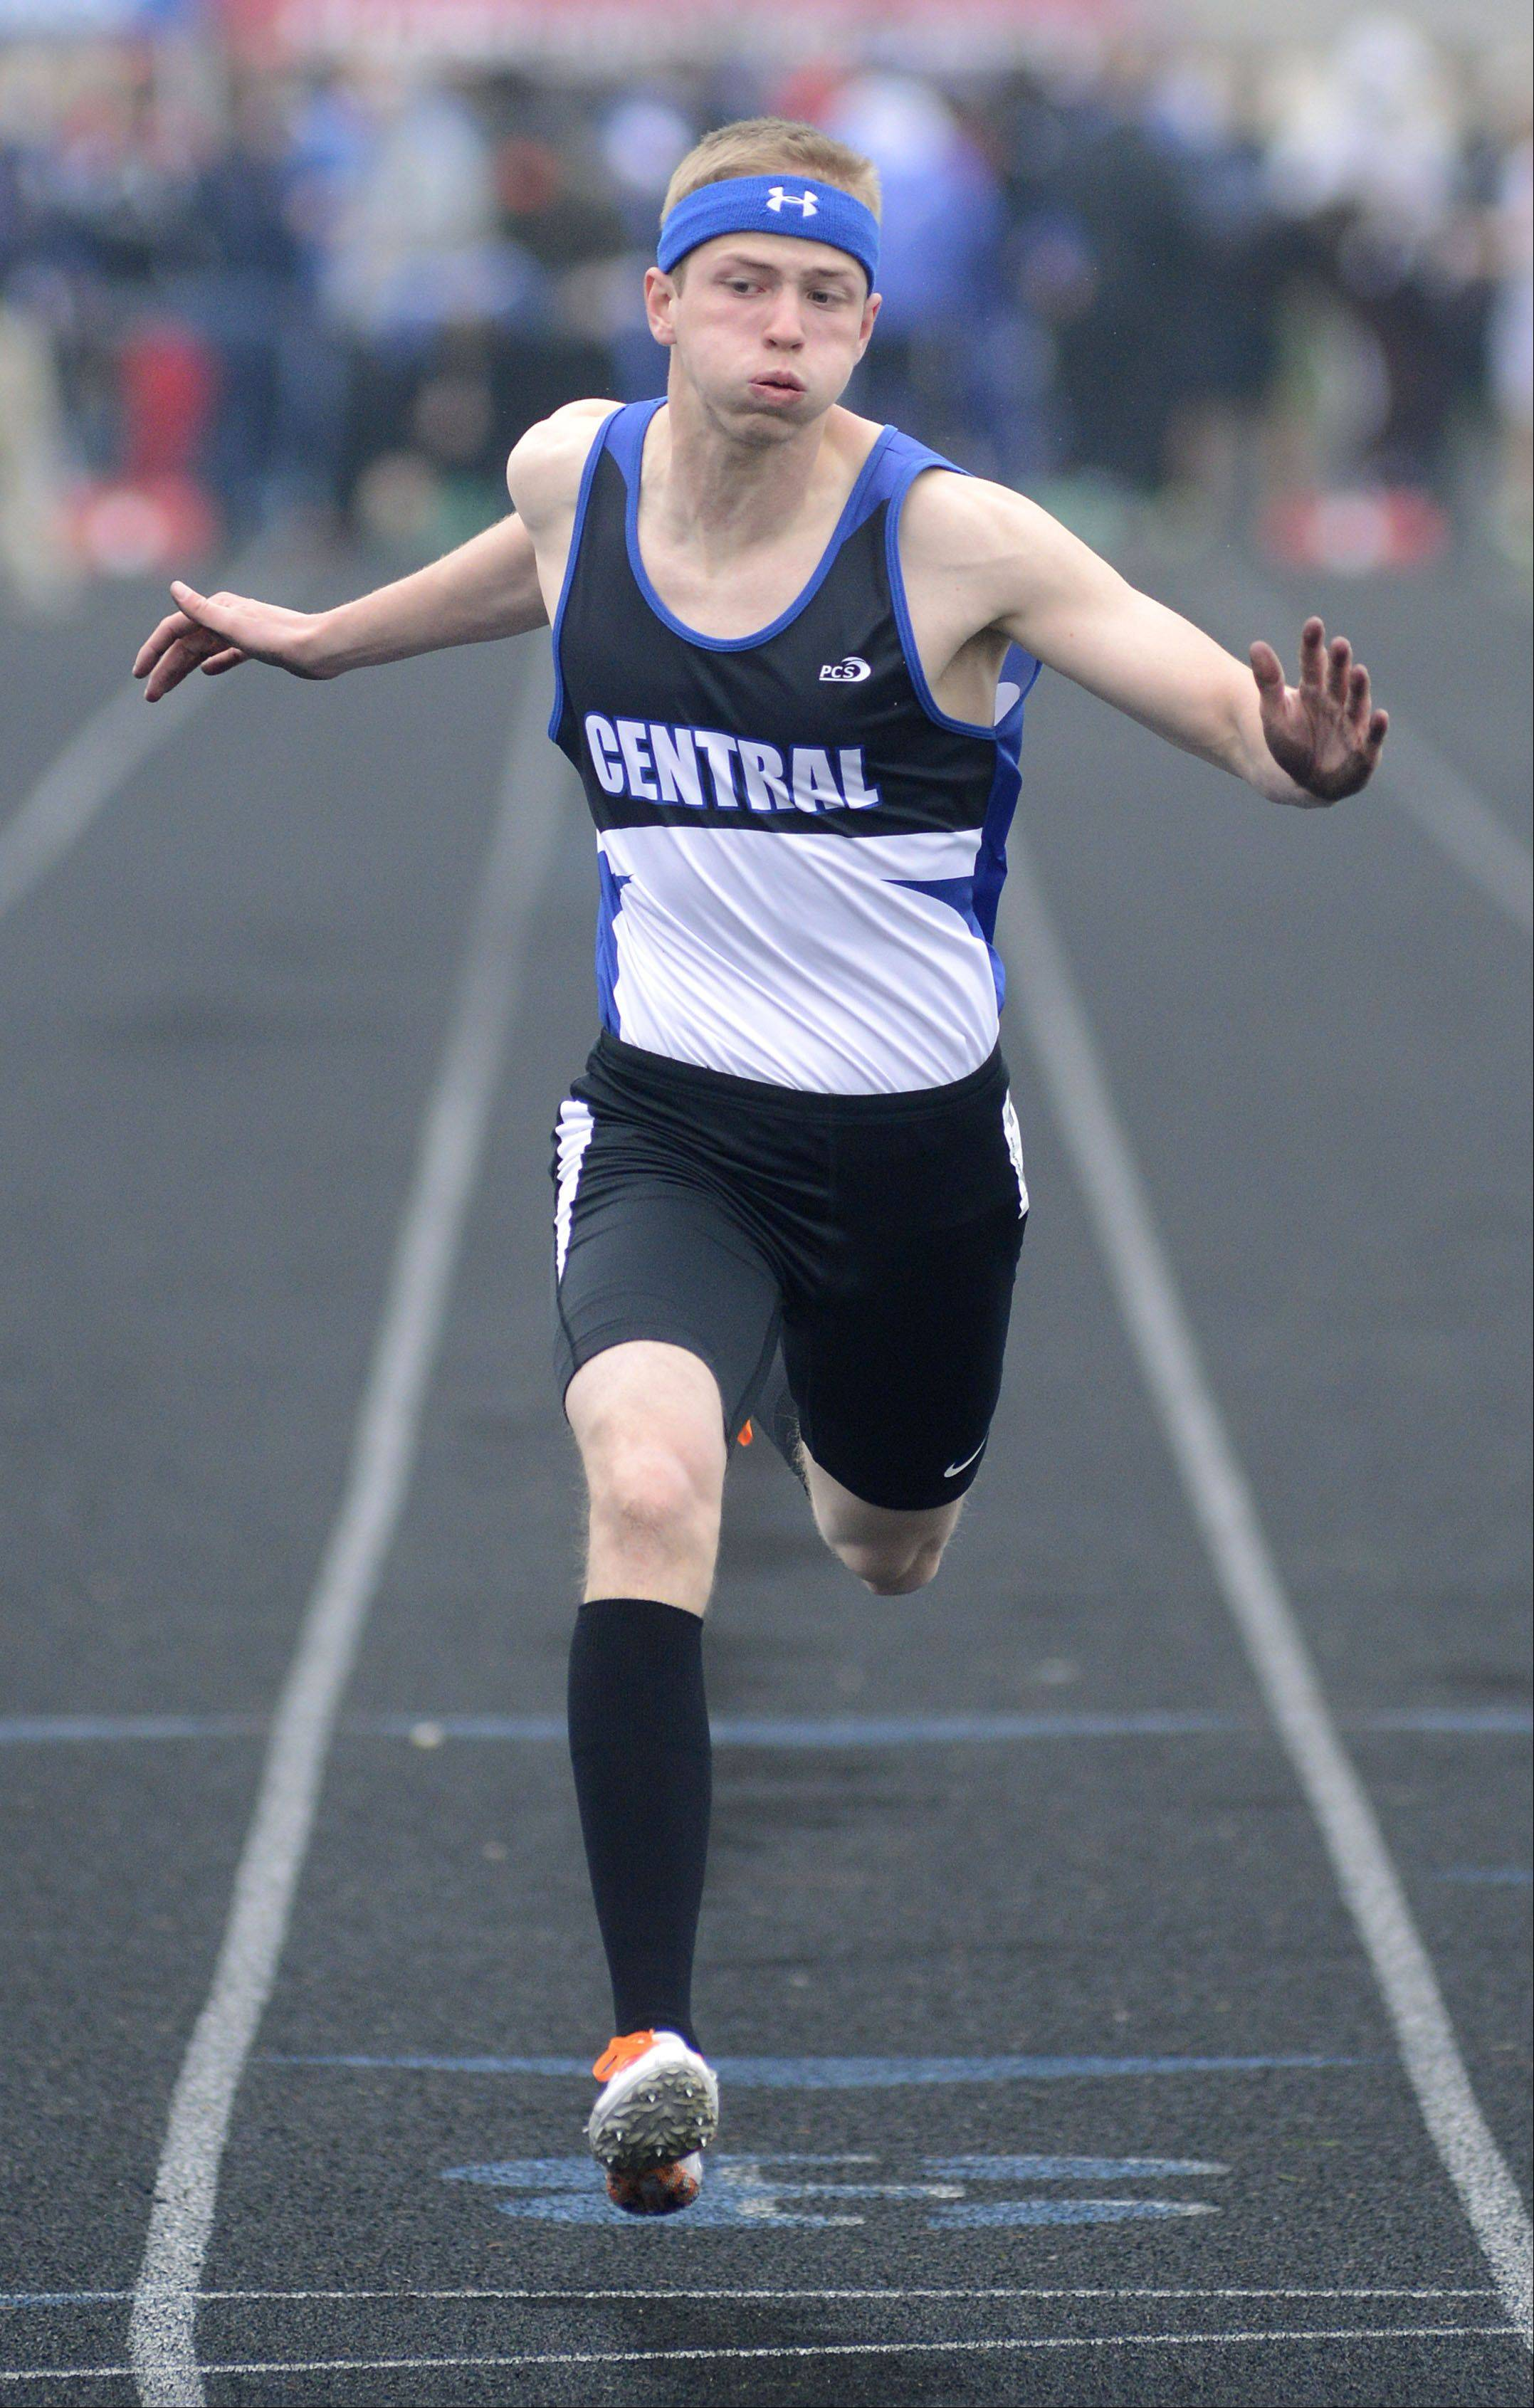 Burlington Central's Ryan Olsen in the second heat of the 100-meter dash prelims at the Kane County boys track meet at Burlington Central on Friday.